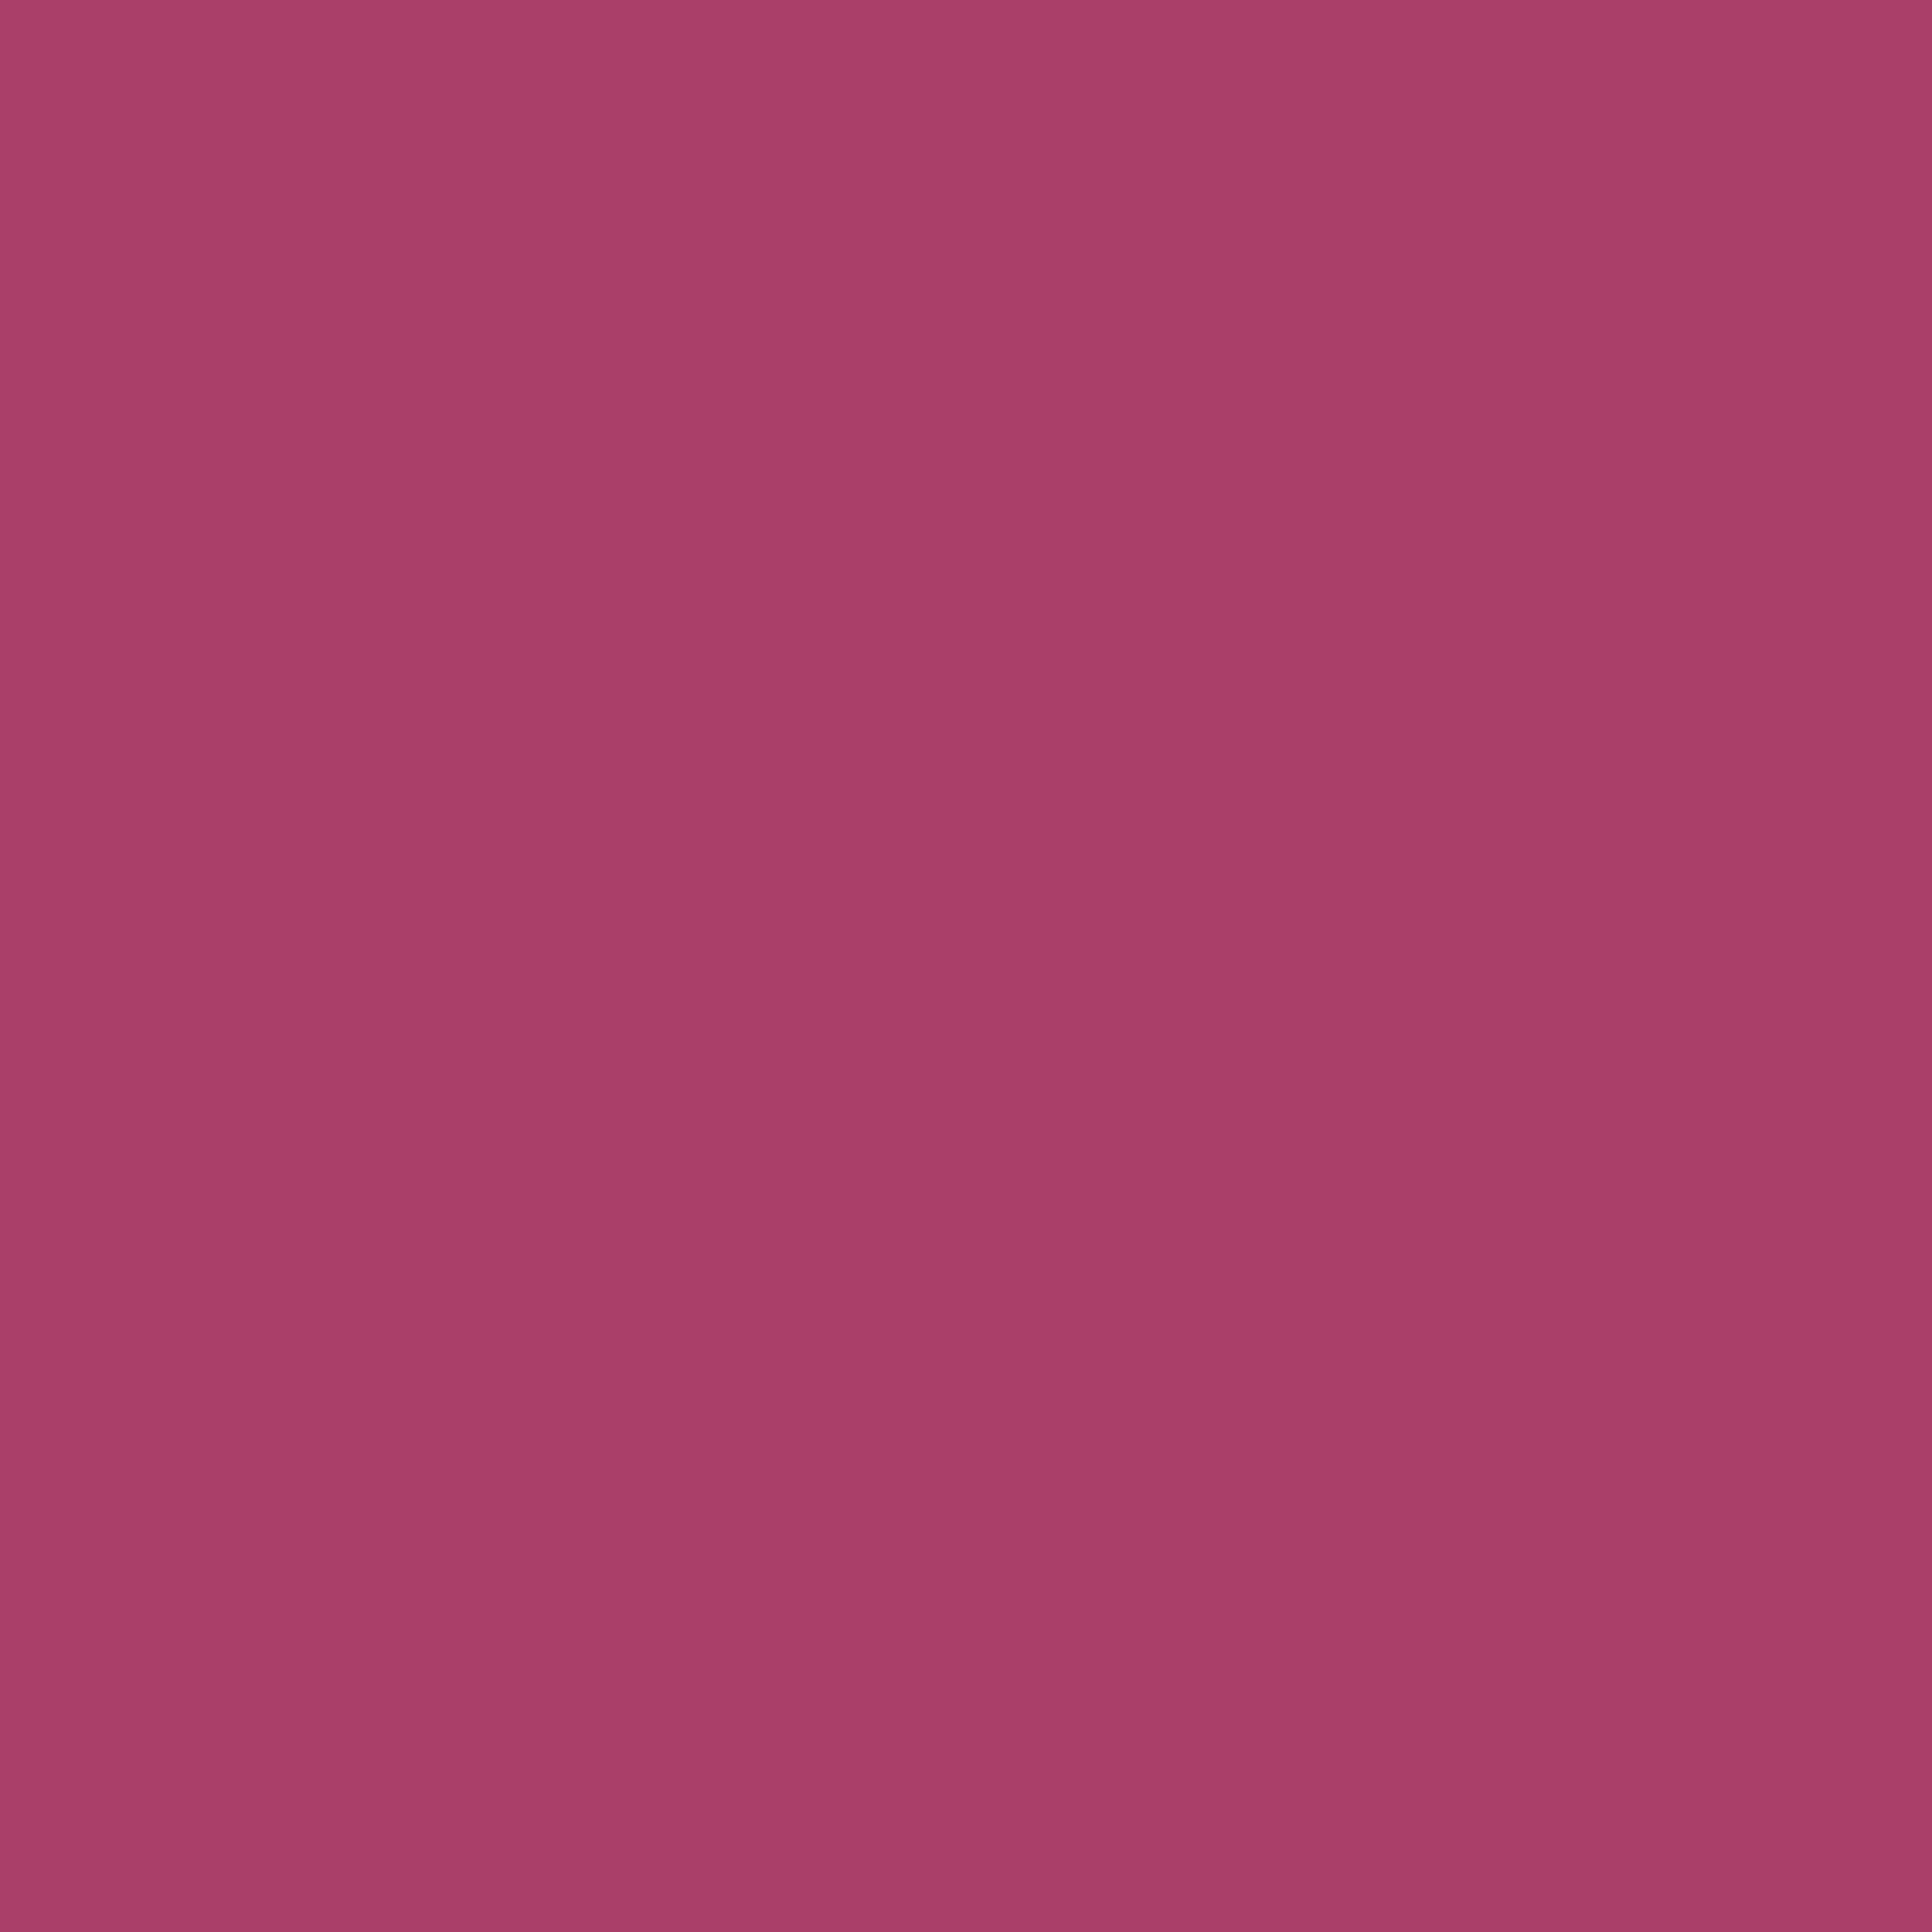 3600x3600 Medium Ruby Solid Color Background